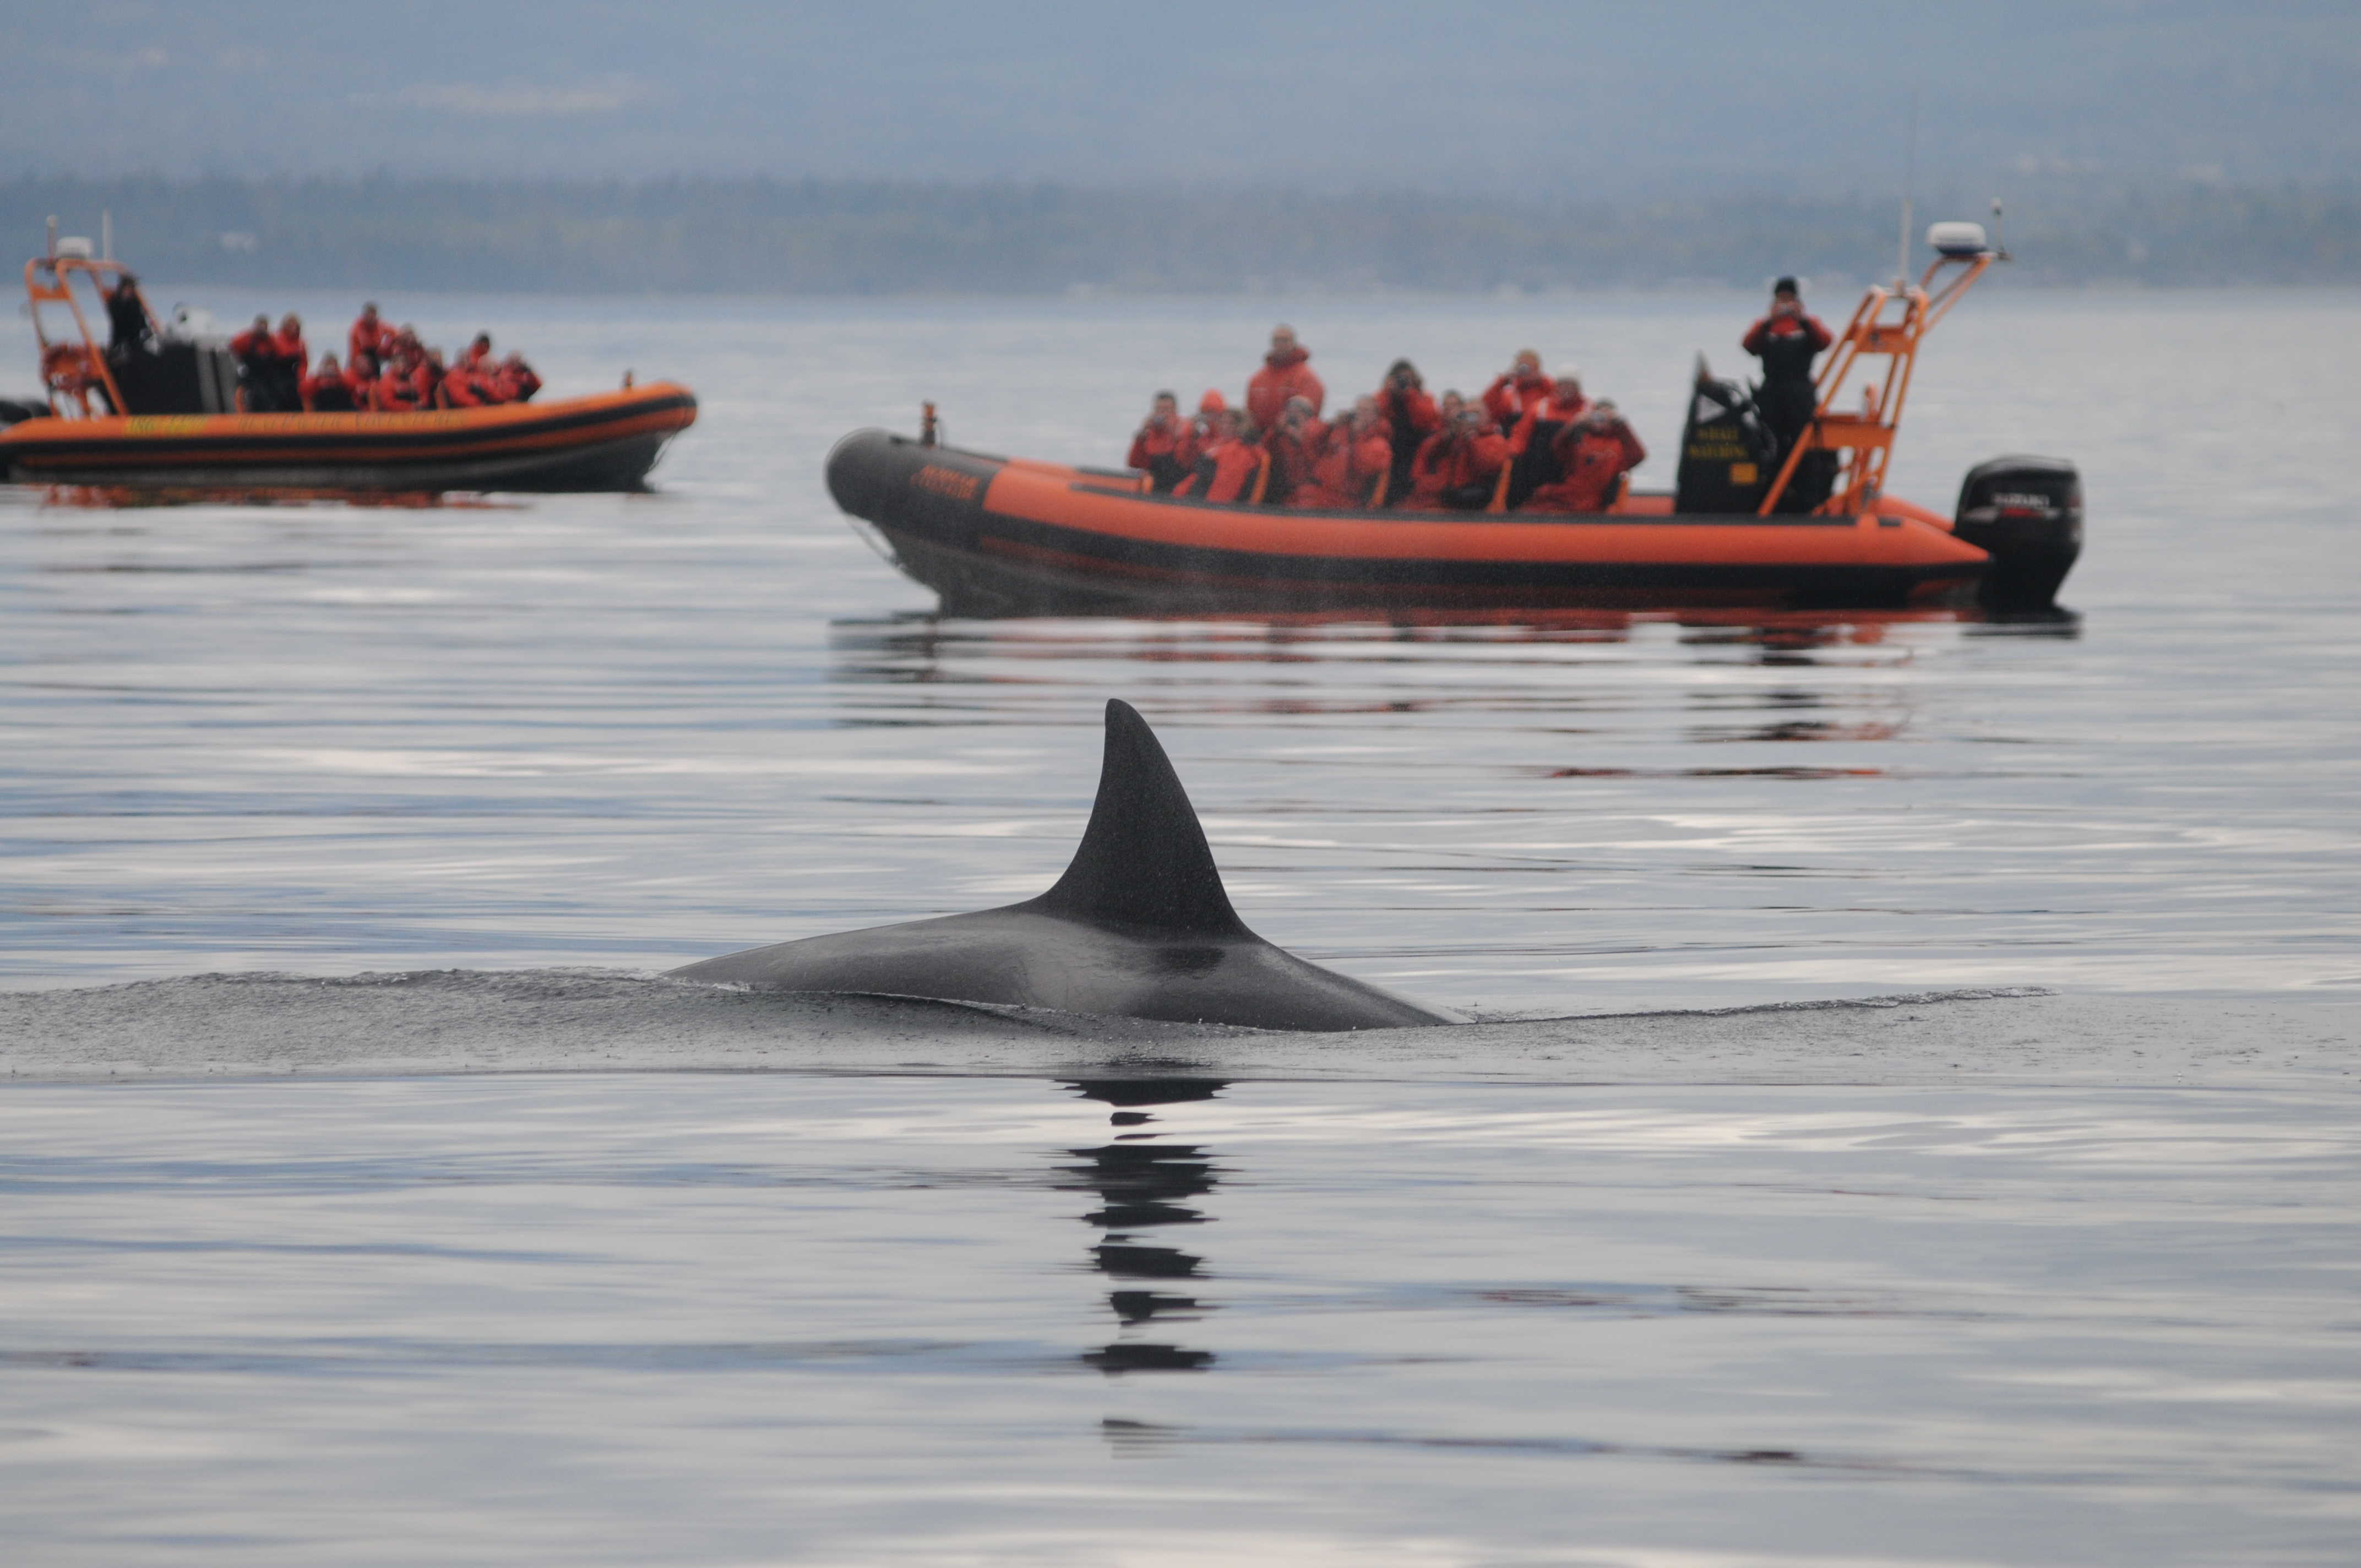 Whale watchers come from all over the world to see our local orcas